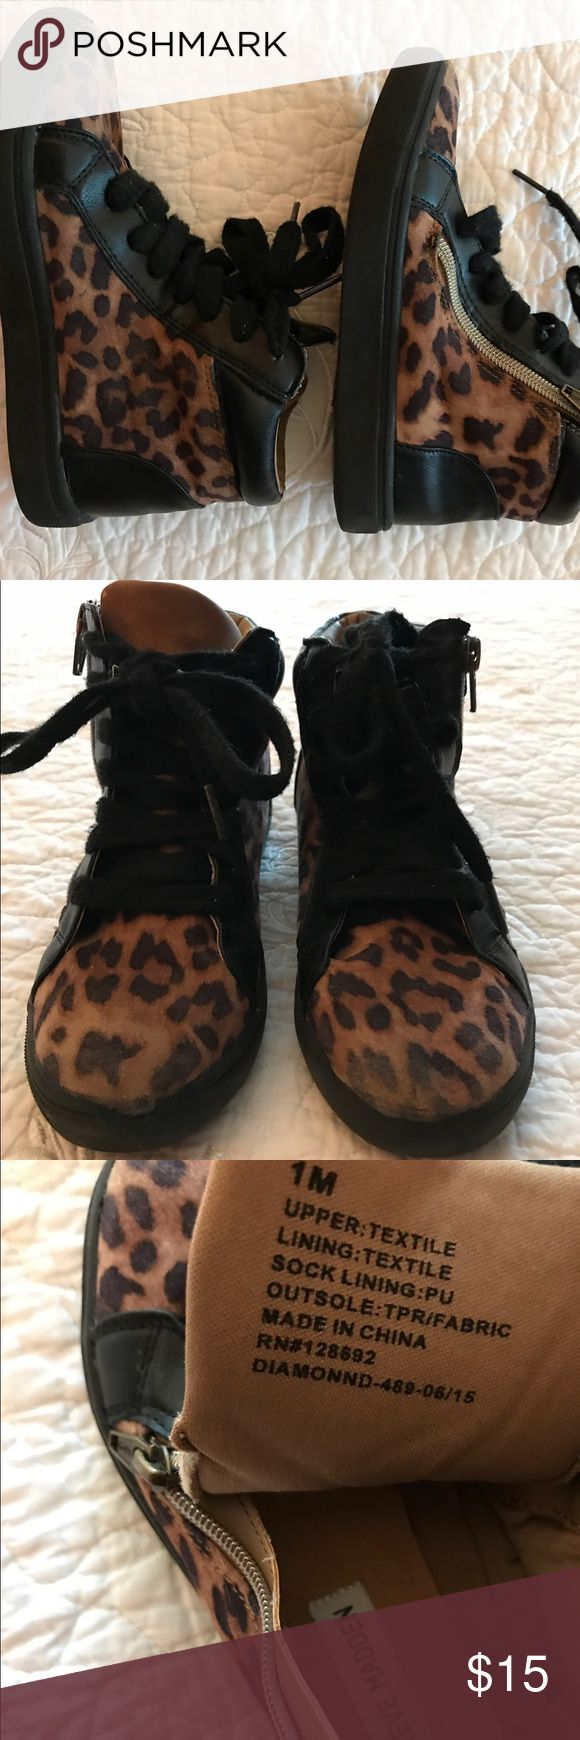 Steve Madden Kids Shoes For that touch of trend that you have been looking for to pair with your little one's jeans or dresses. Zipper closure. Steve Madden Shoes Sneakers